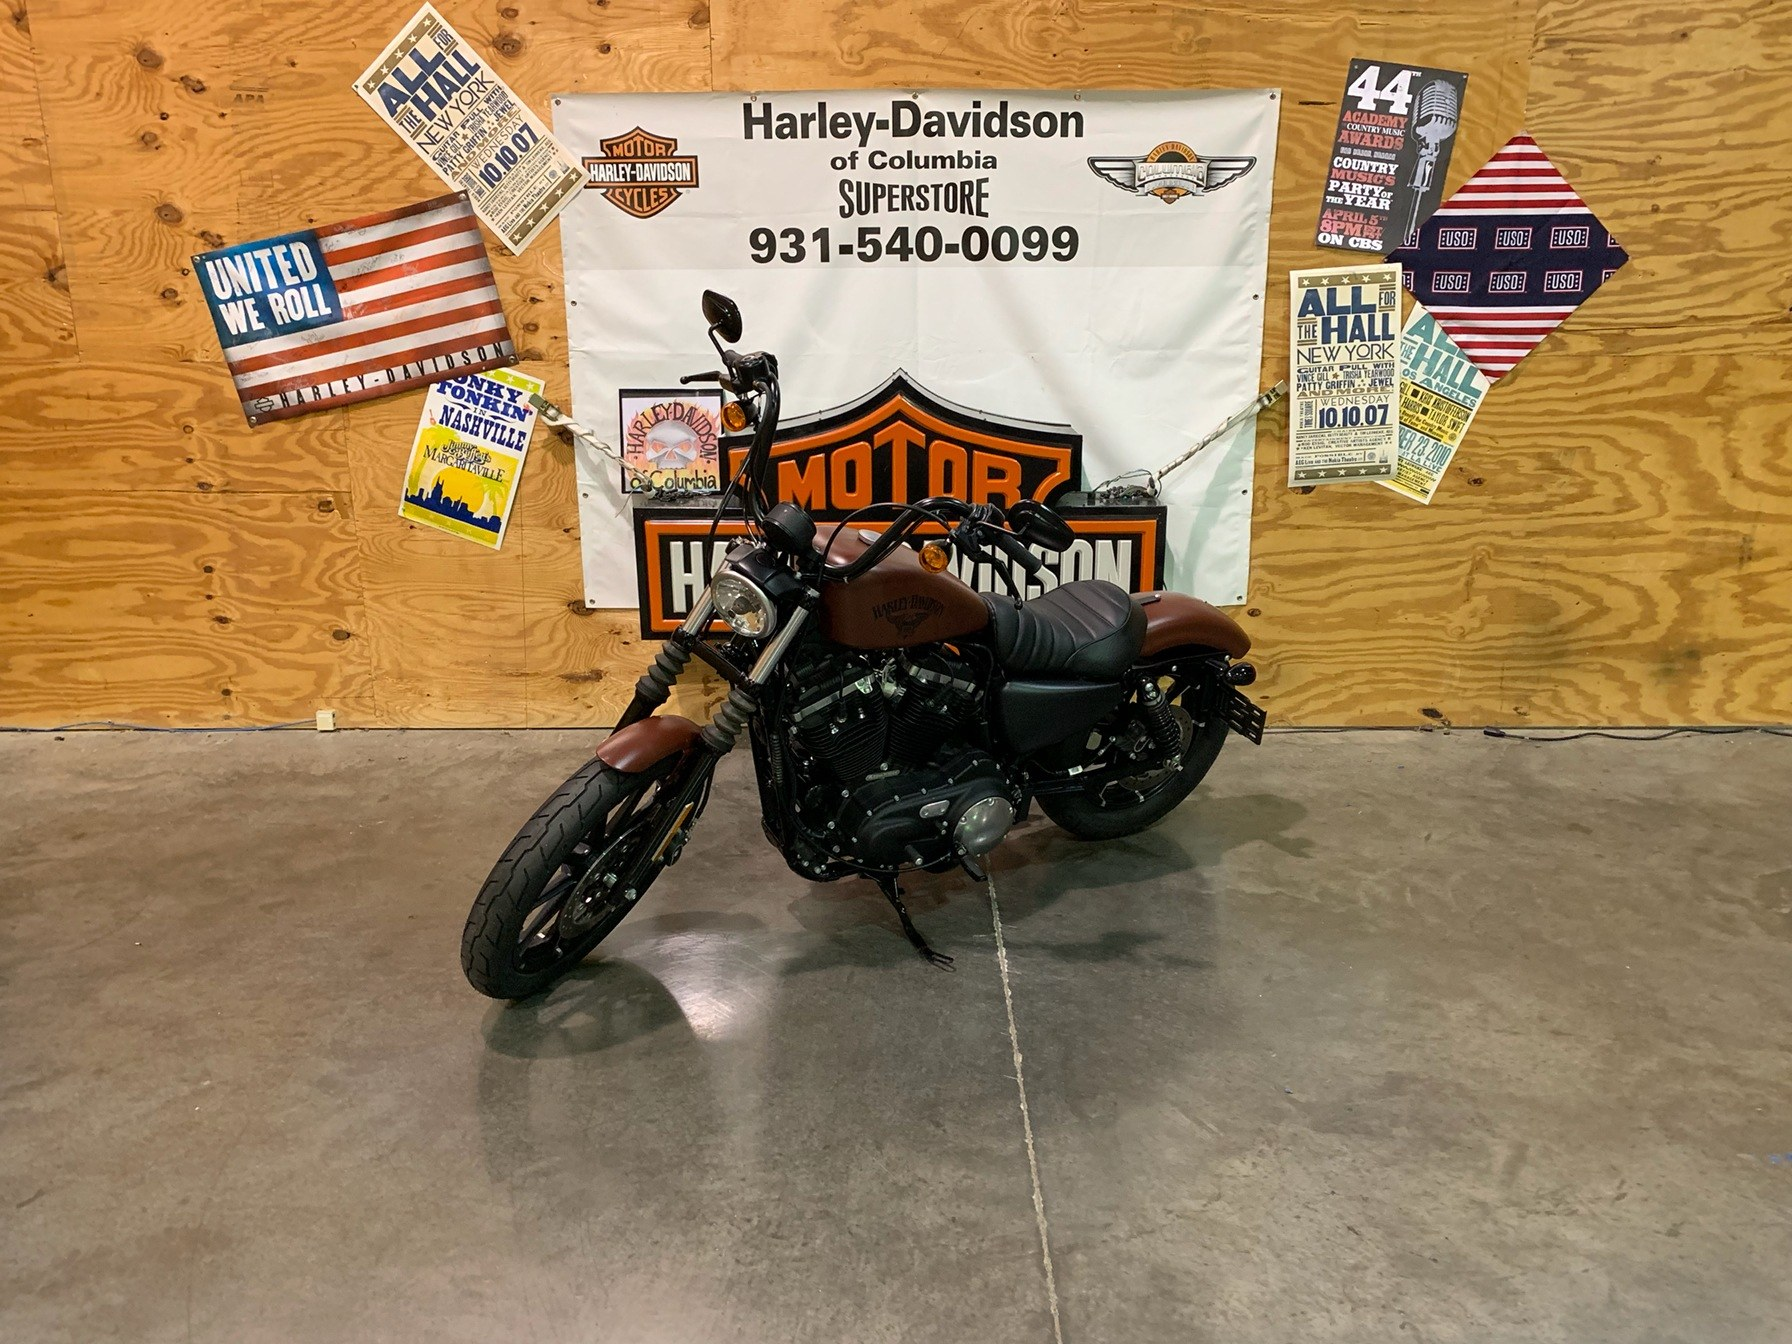 2017 Harley-Davidson XL883N in Columbia, Tennessee - Photo 4